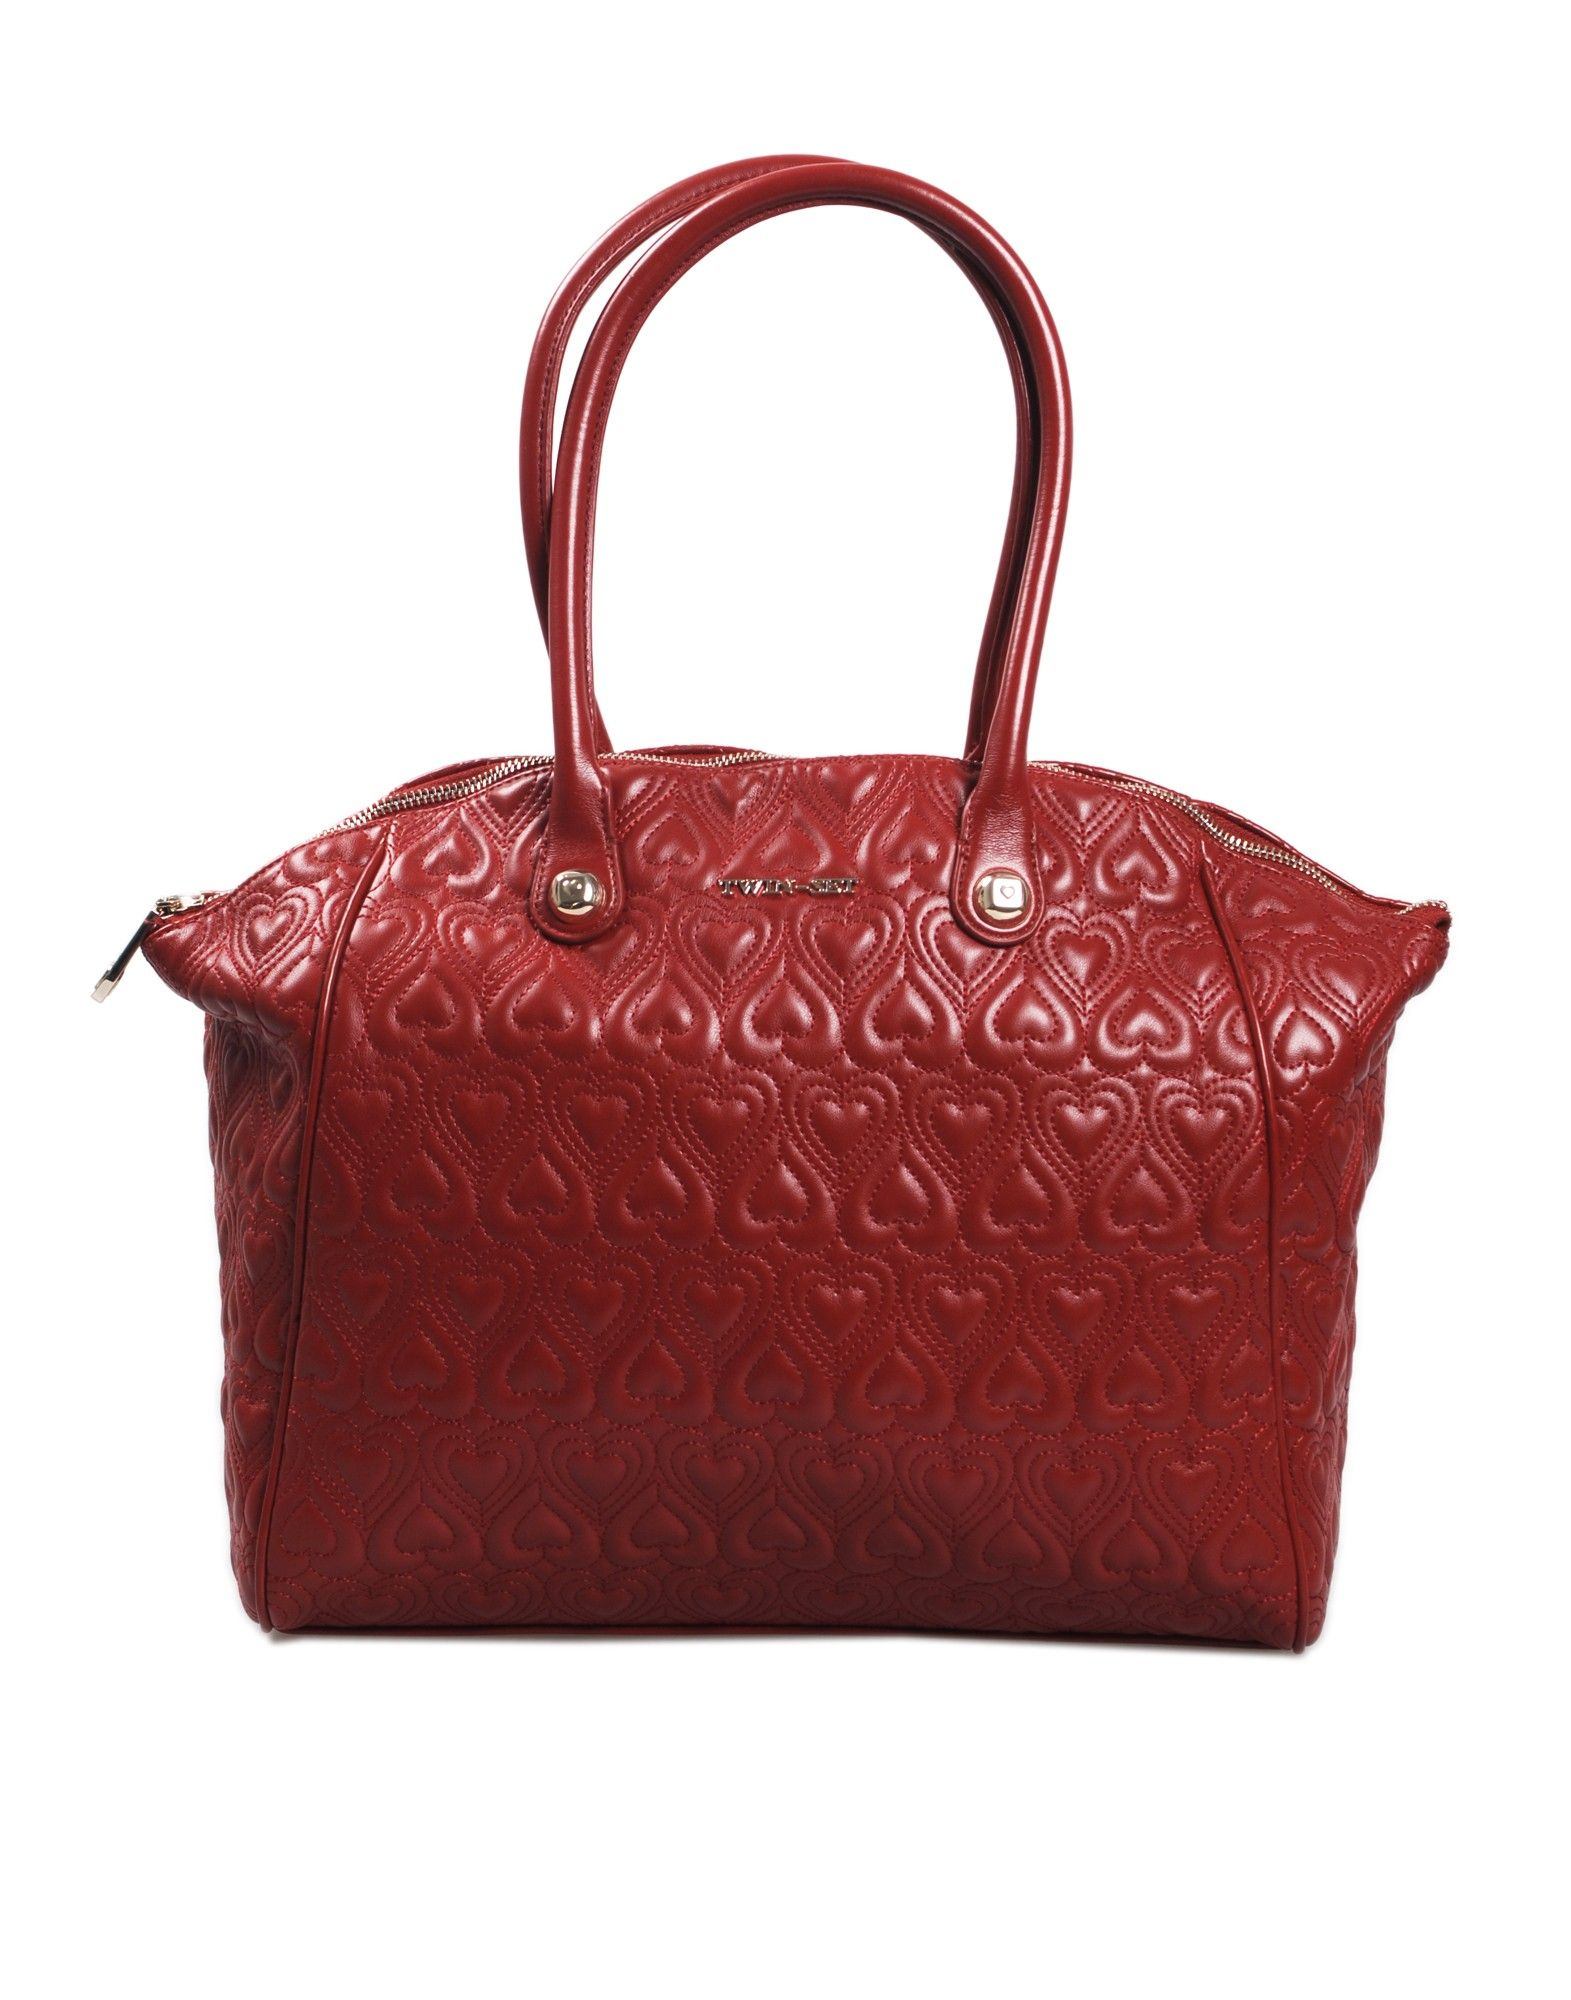 Borsa shopping TWIN SET by SIMONA BARBIERI in ecopelle colore rosso, chiusura a zip, interno foderato con logo e tasca a zip, manici.